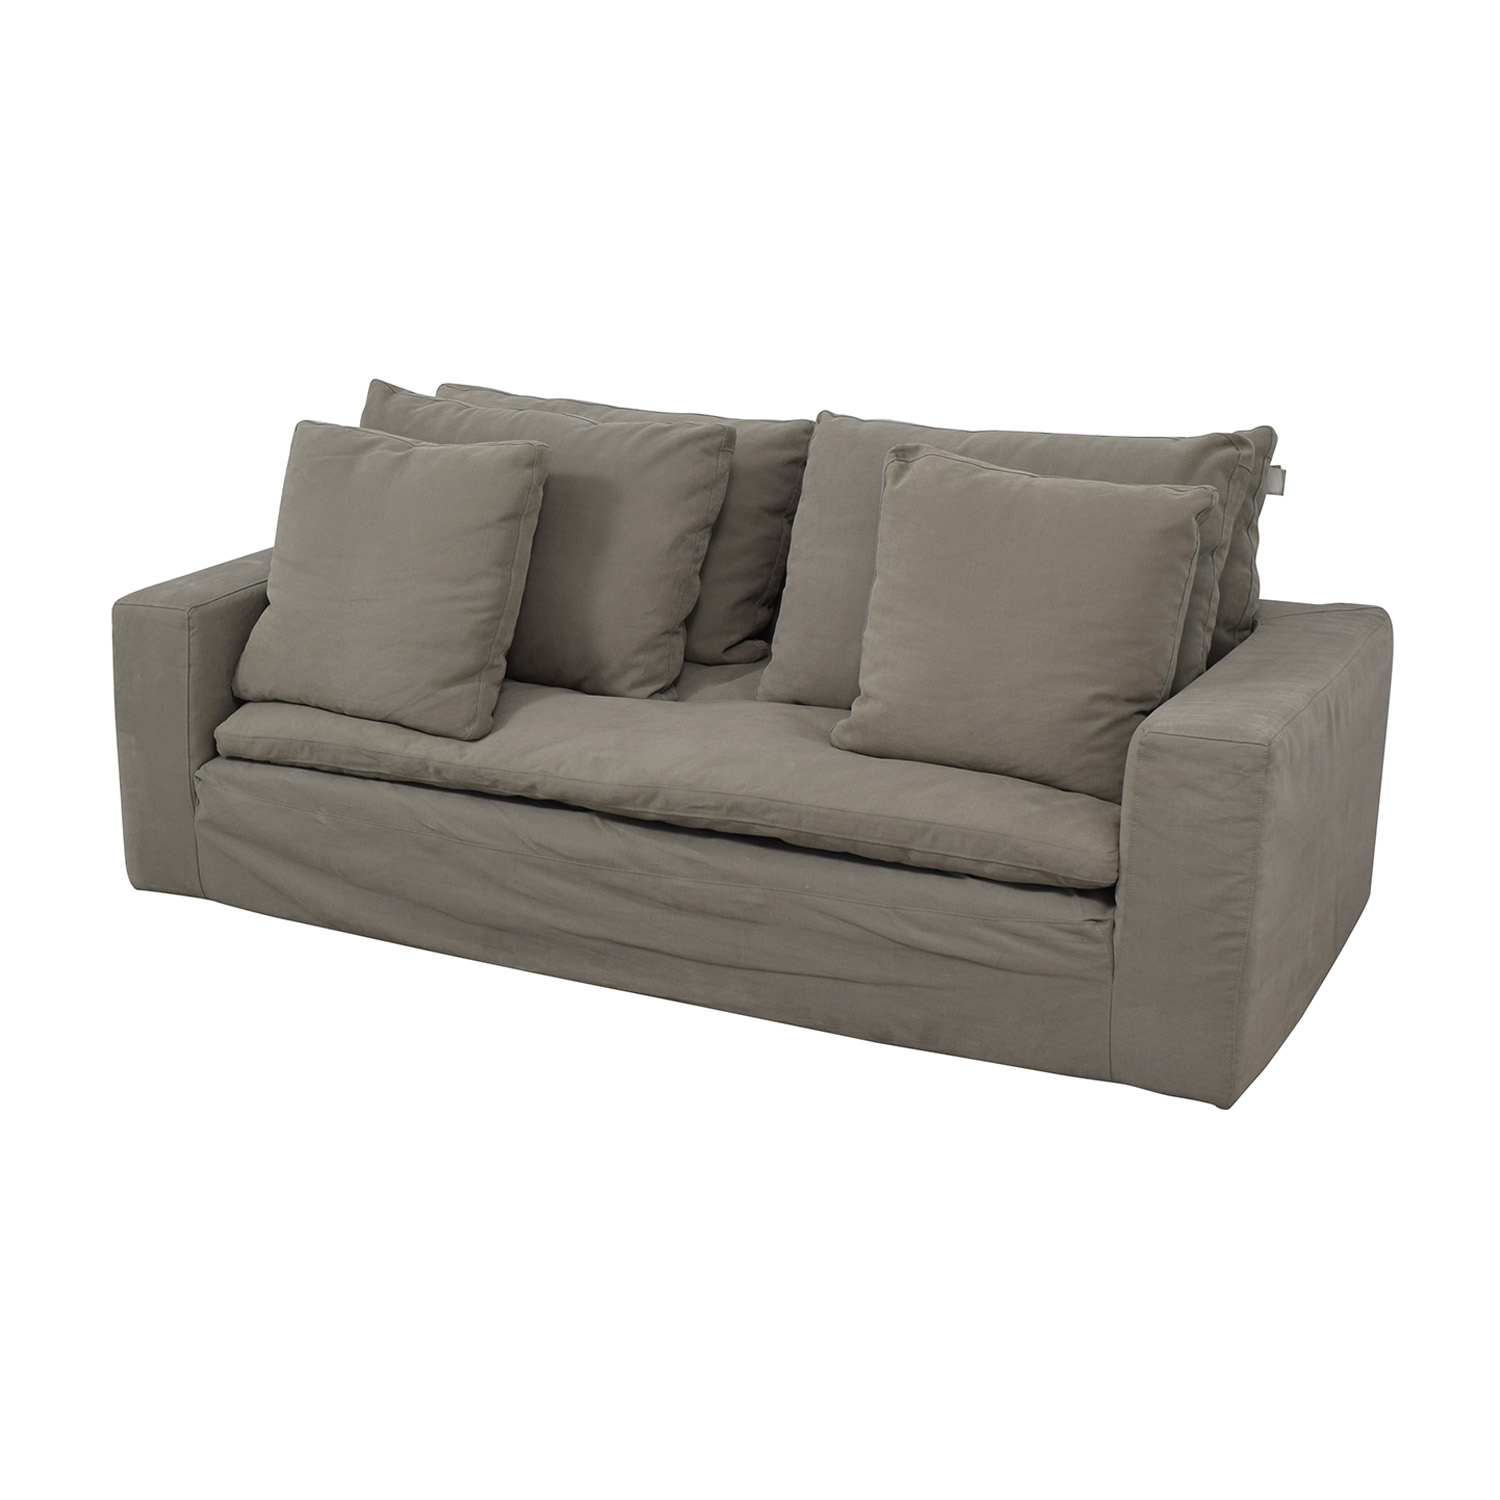 Restoration Hardware Grey Cloud Track Arm Single Cushion Sofa